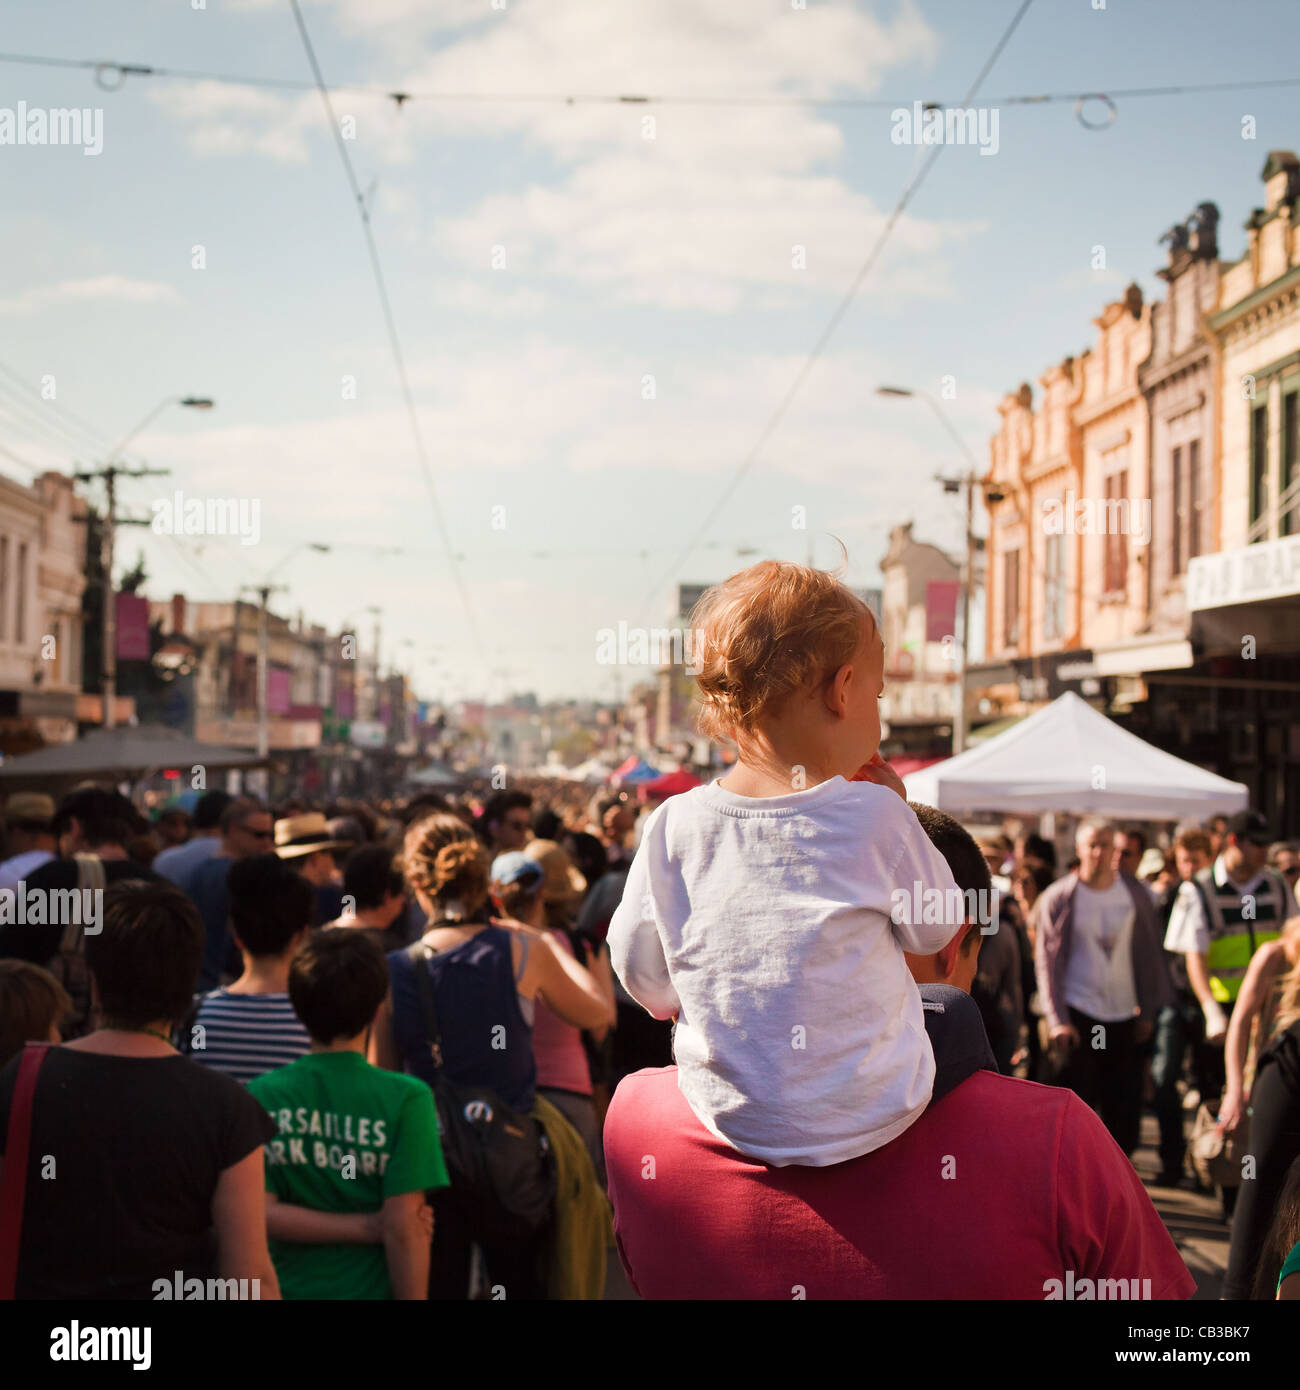 High Noon community festival est un festival de musique local Northcote à Melbourne, Australie enfant obtient Photo Stock